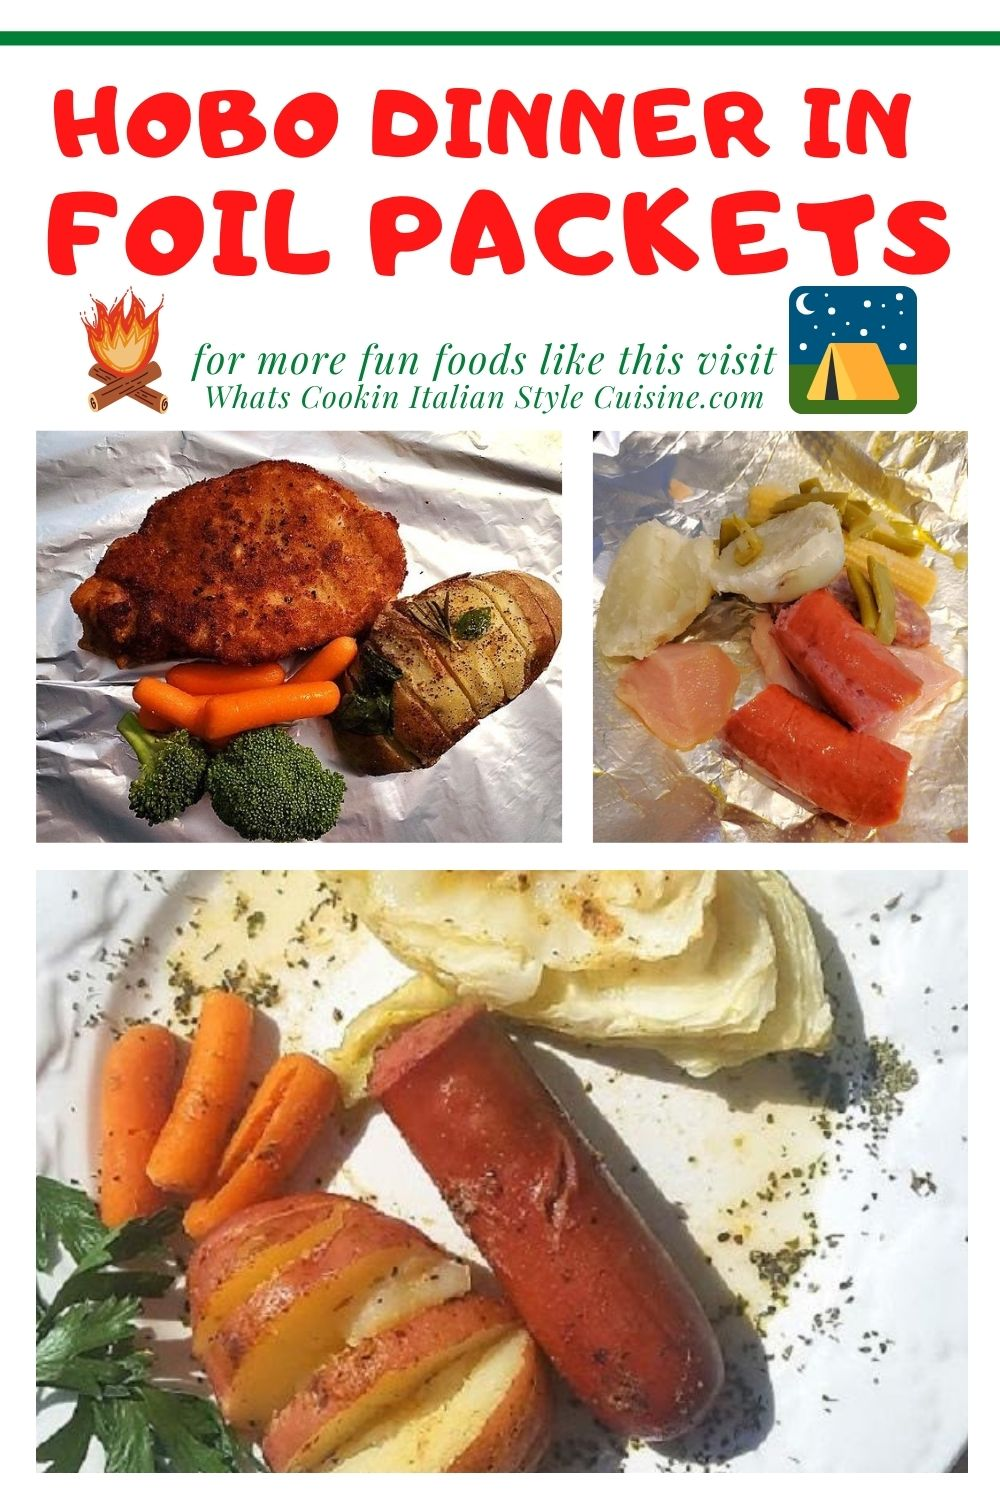 this is a fun packet of baked camping food in foil. There is kielbasa, chicken, and Italian sausage along with carrots, potatoes, cabbage and green beans all packed up and ready to be baked, grilled or on a camp fire